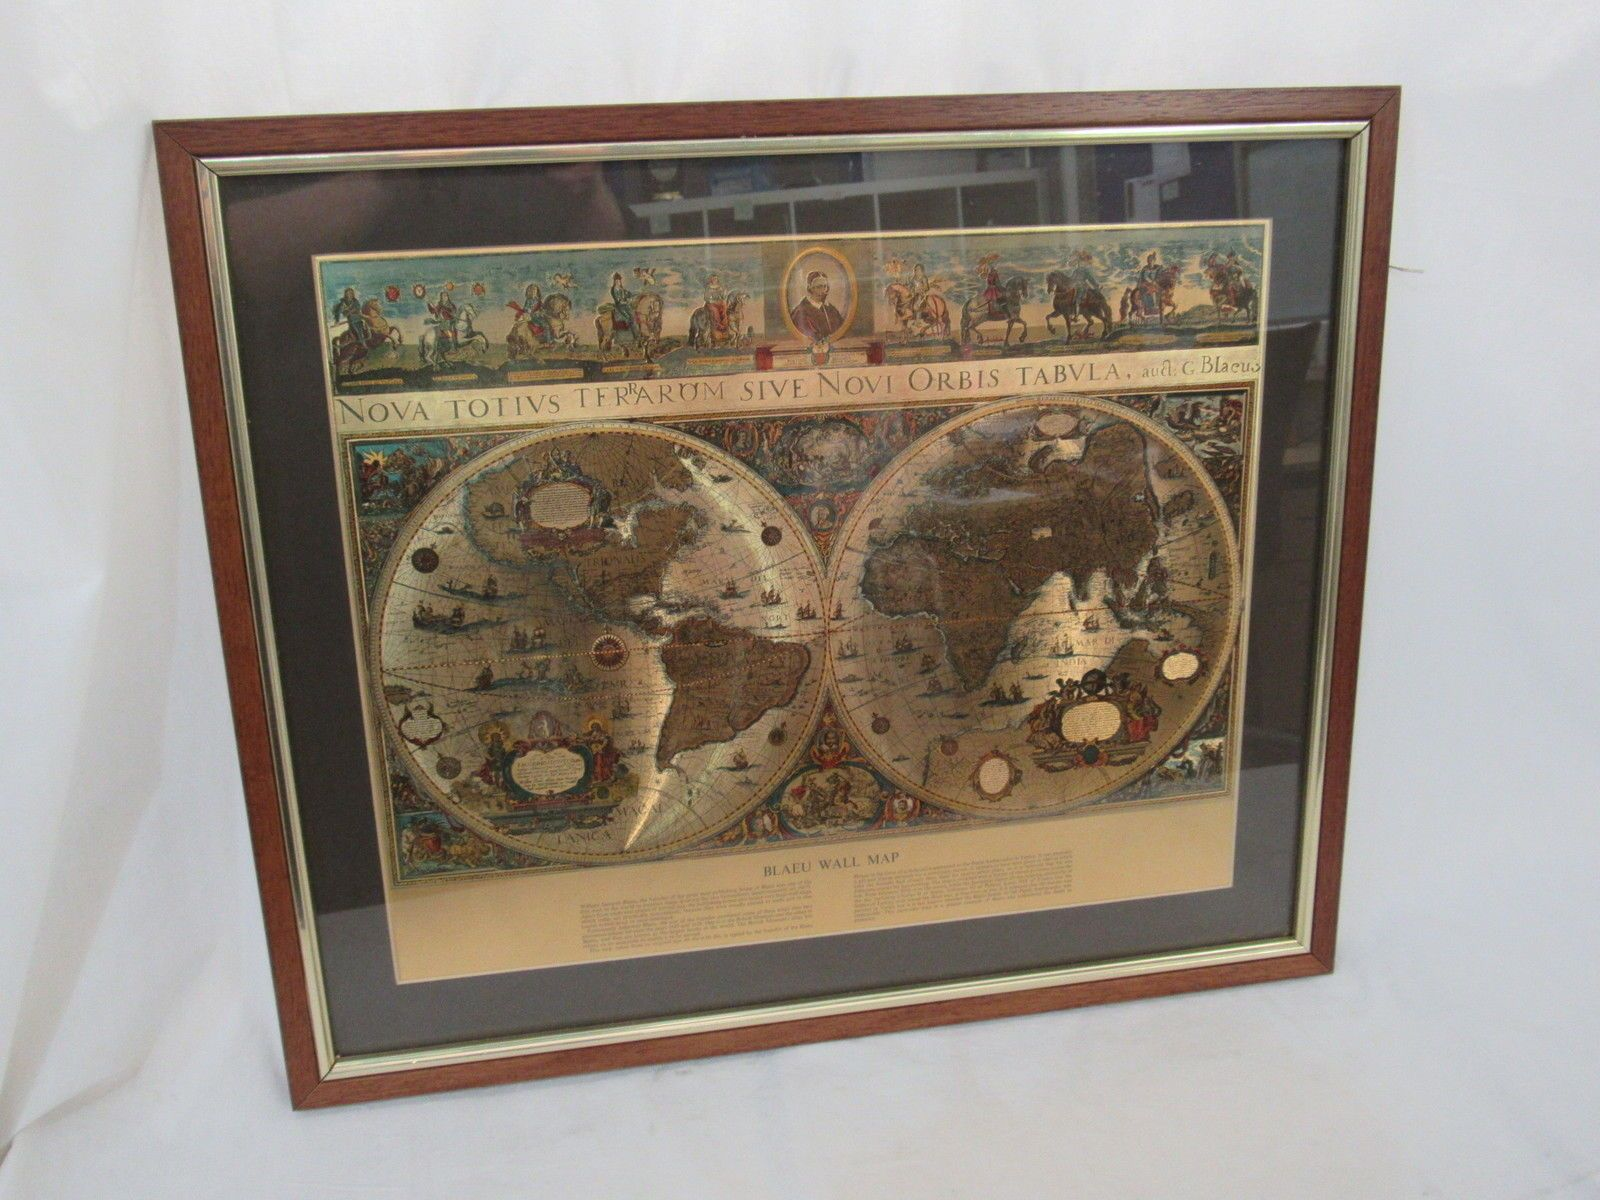 Blaeu World Map.Attractive Framed Gold Foil Reproduction 1650s Blaeu World Map War